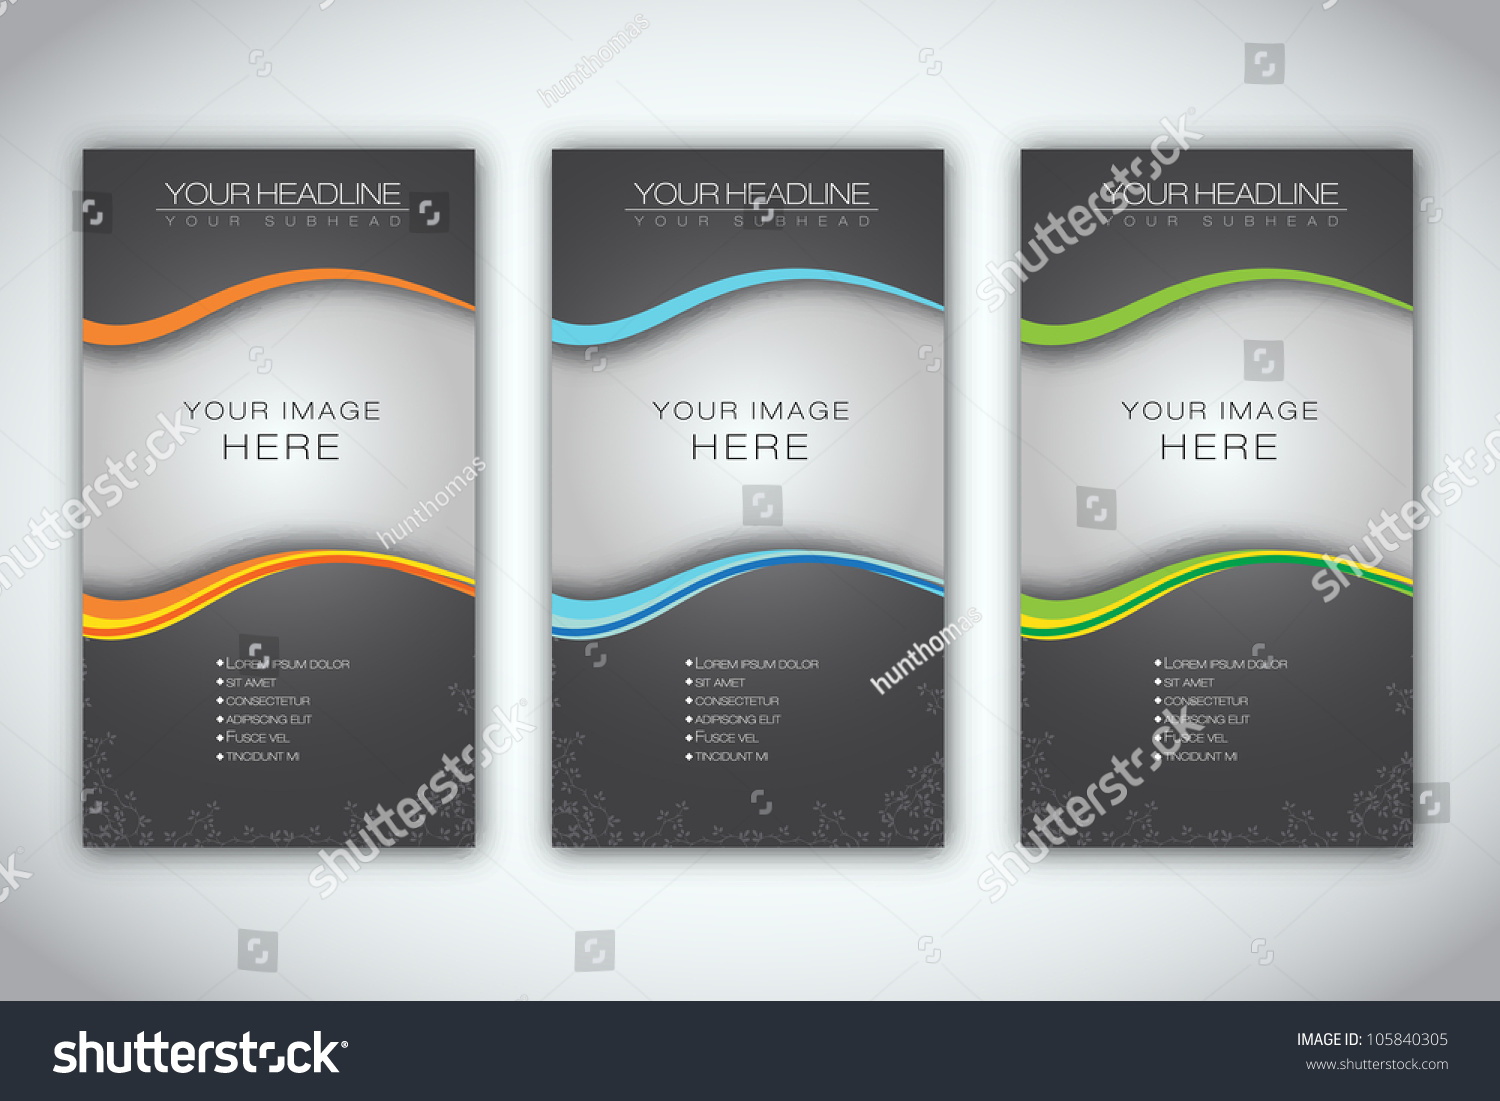 Beautiful Blank Brochure Template | Blank Tri Fold Brochure Template U2026 Brochures;  Favorites By App U2026 Old House Design Template (black And White) PowerPoint.